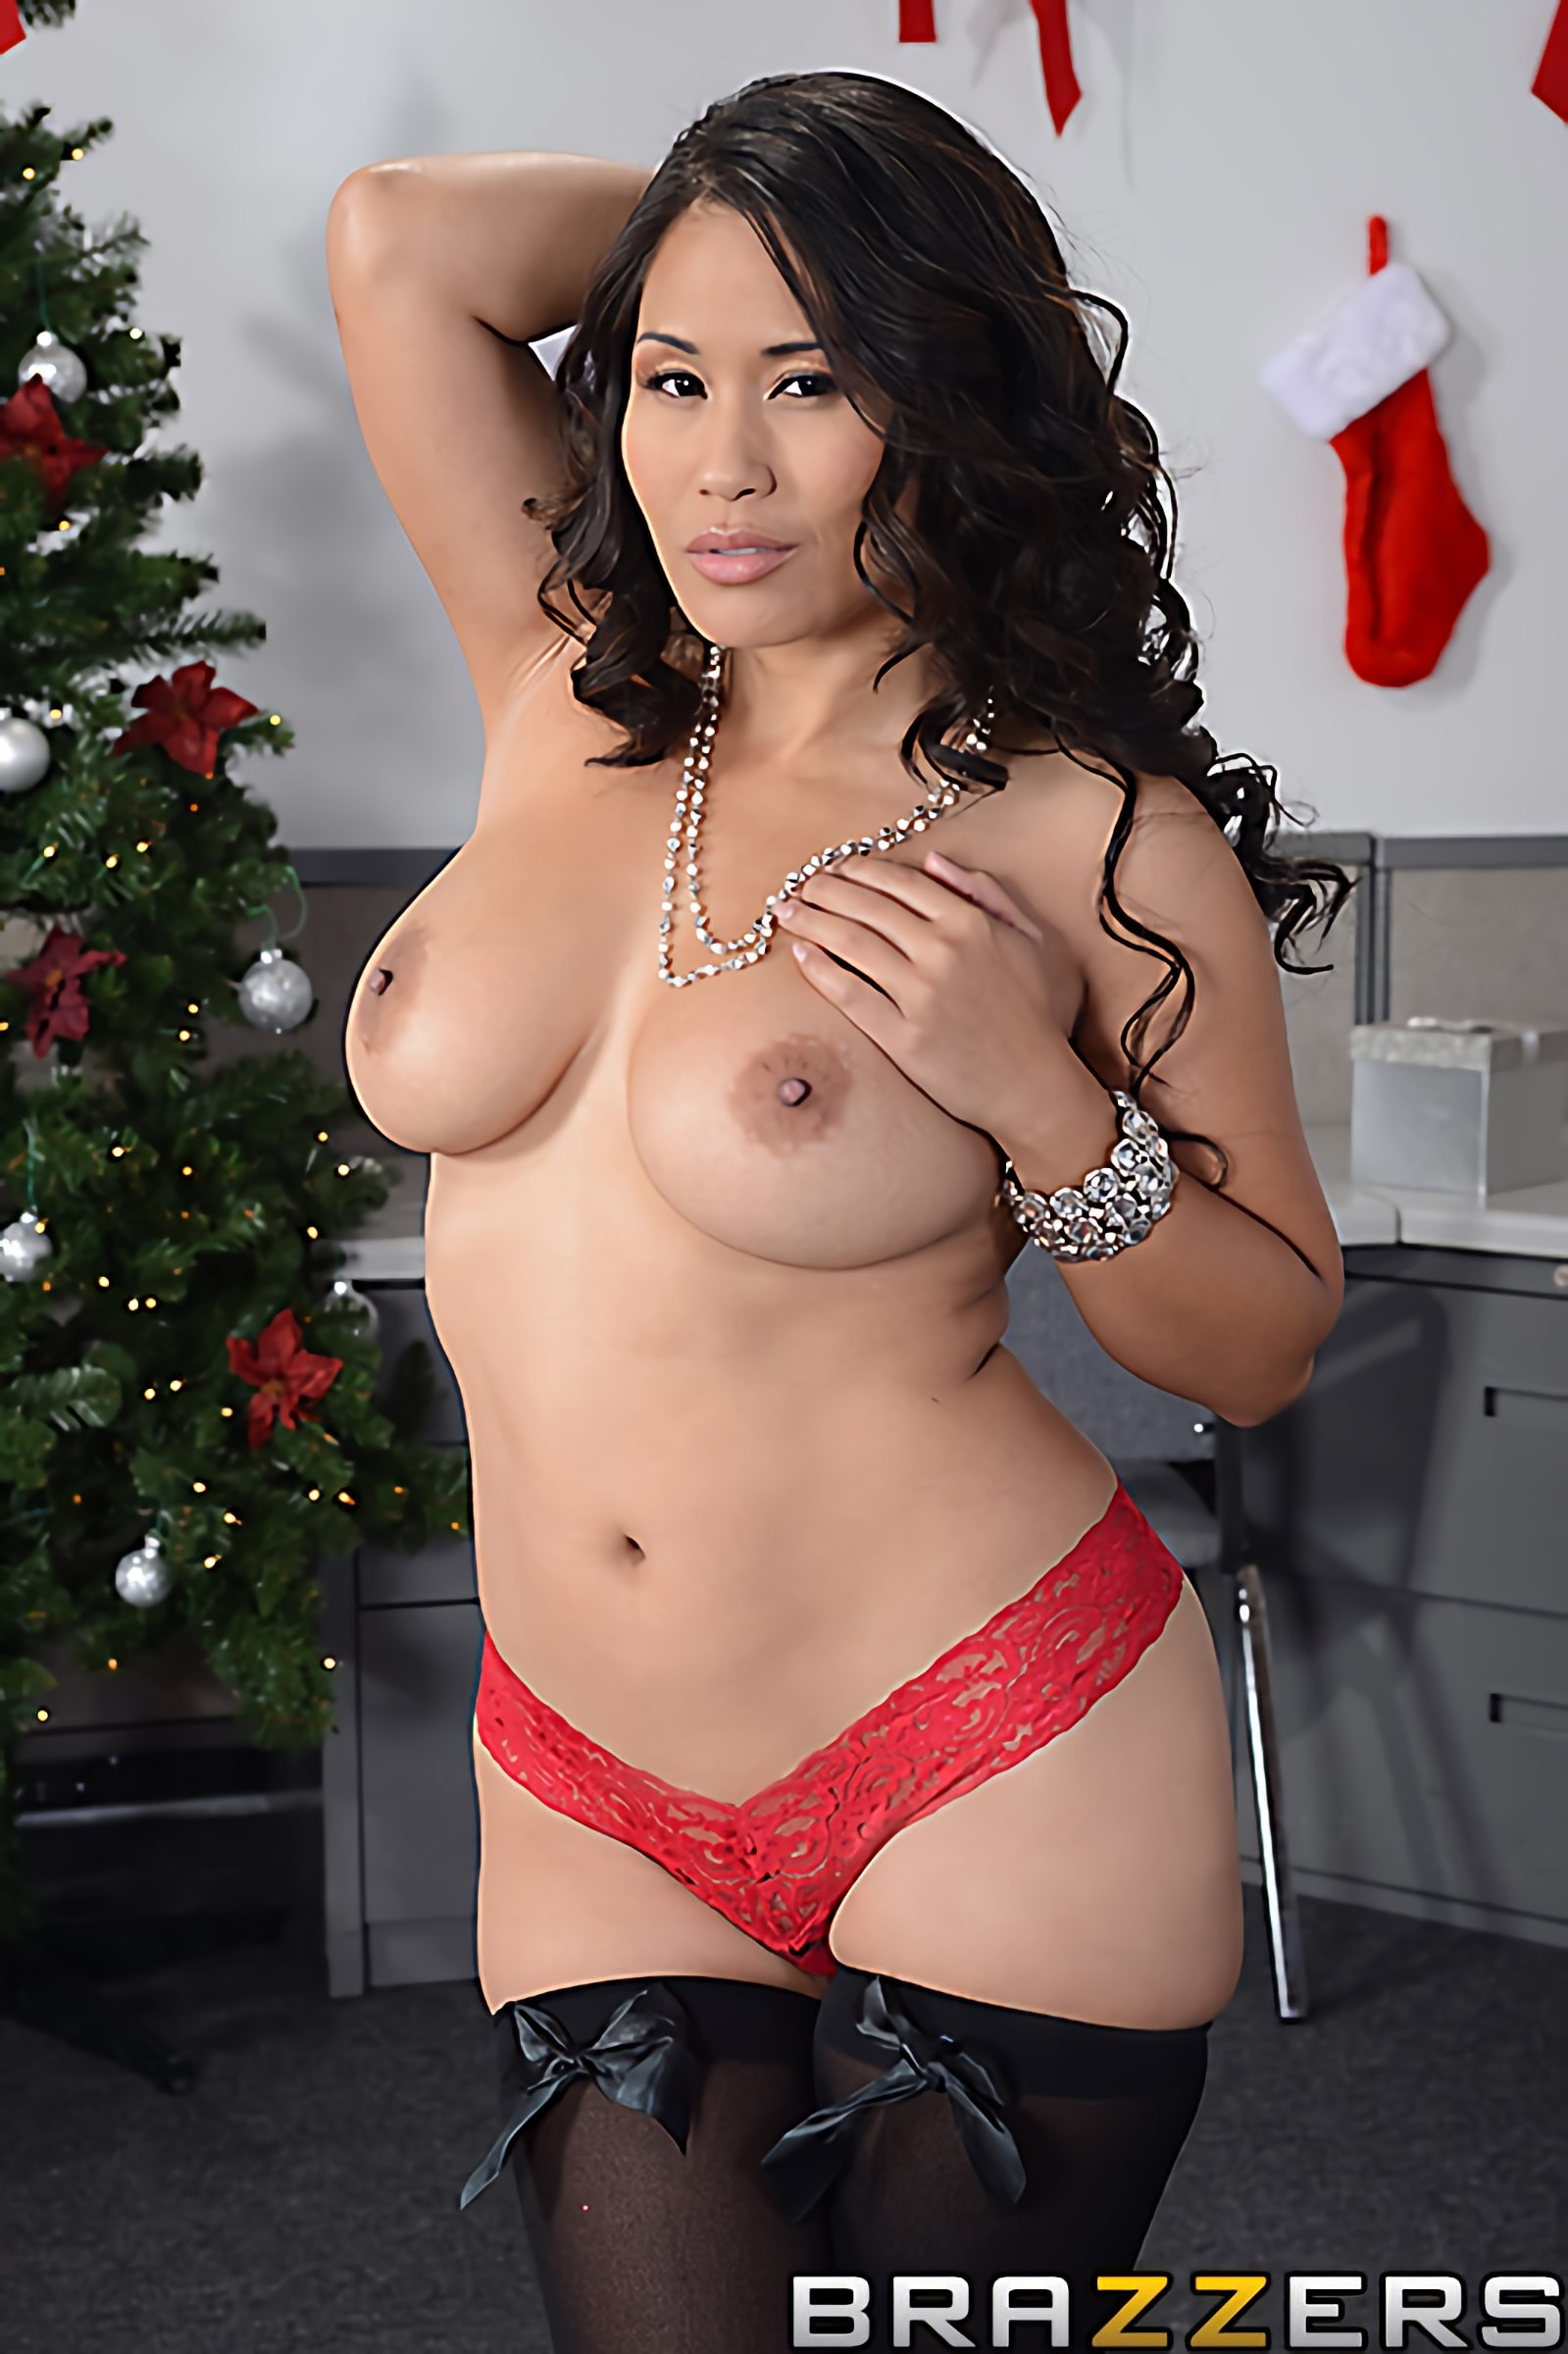 Brazzers 'Office Christmas Party' starring Jessica Bangkok (Photo 14)